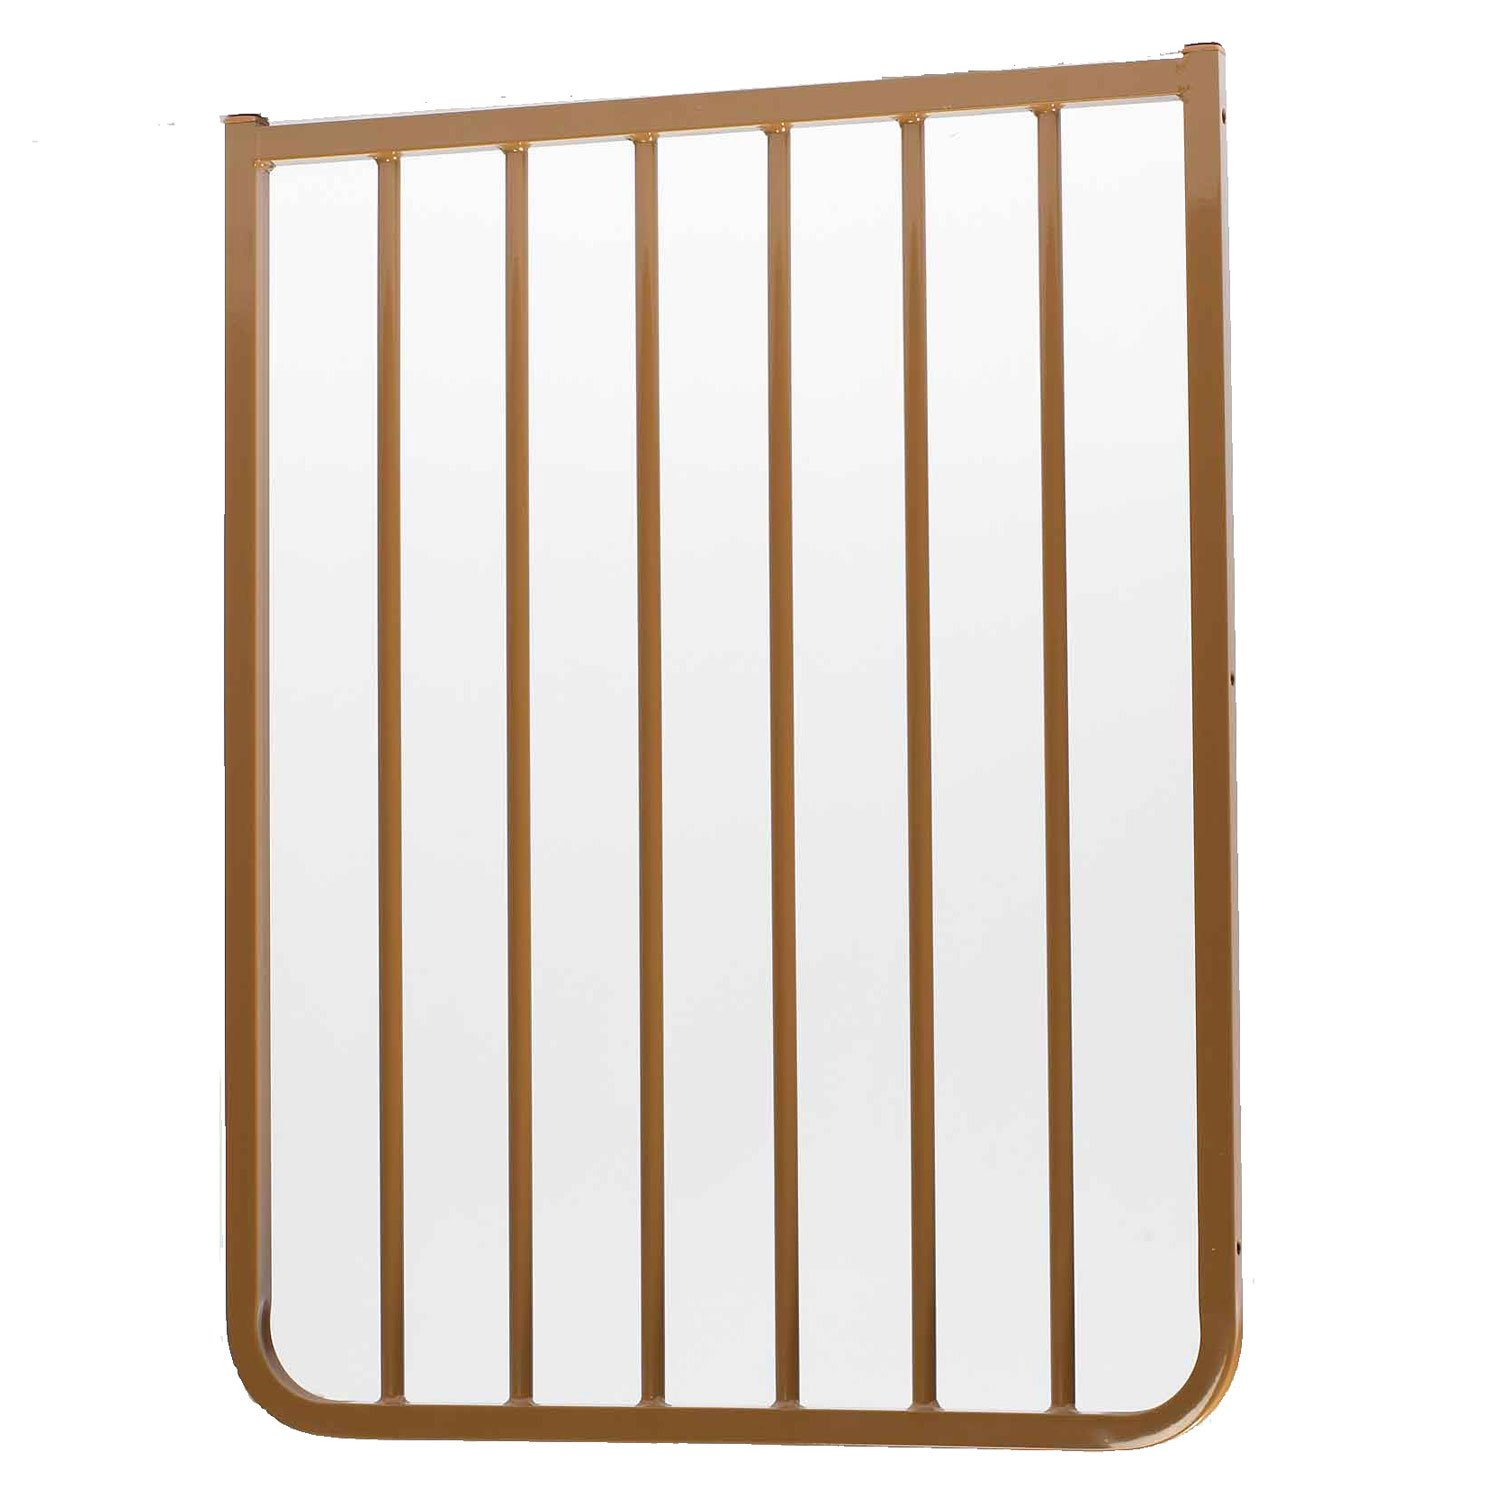 "Cardinal Gates Stairway Special Outdoor 21 3/4"" Gate Extension in Brown"